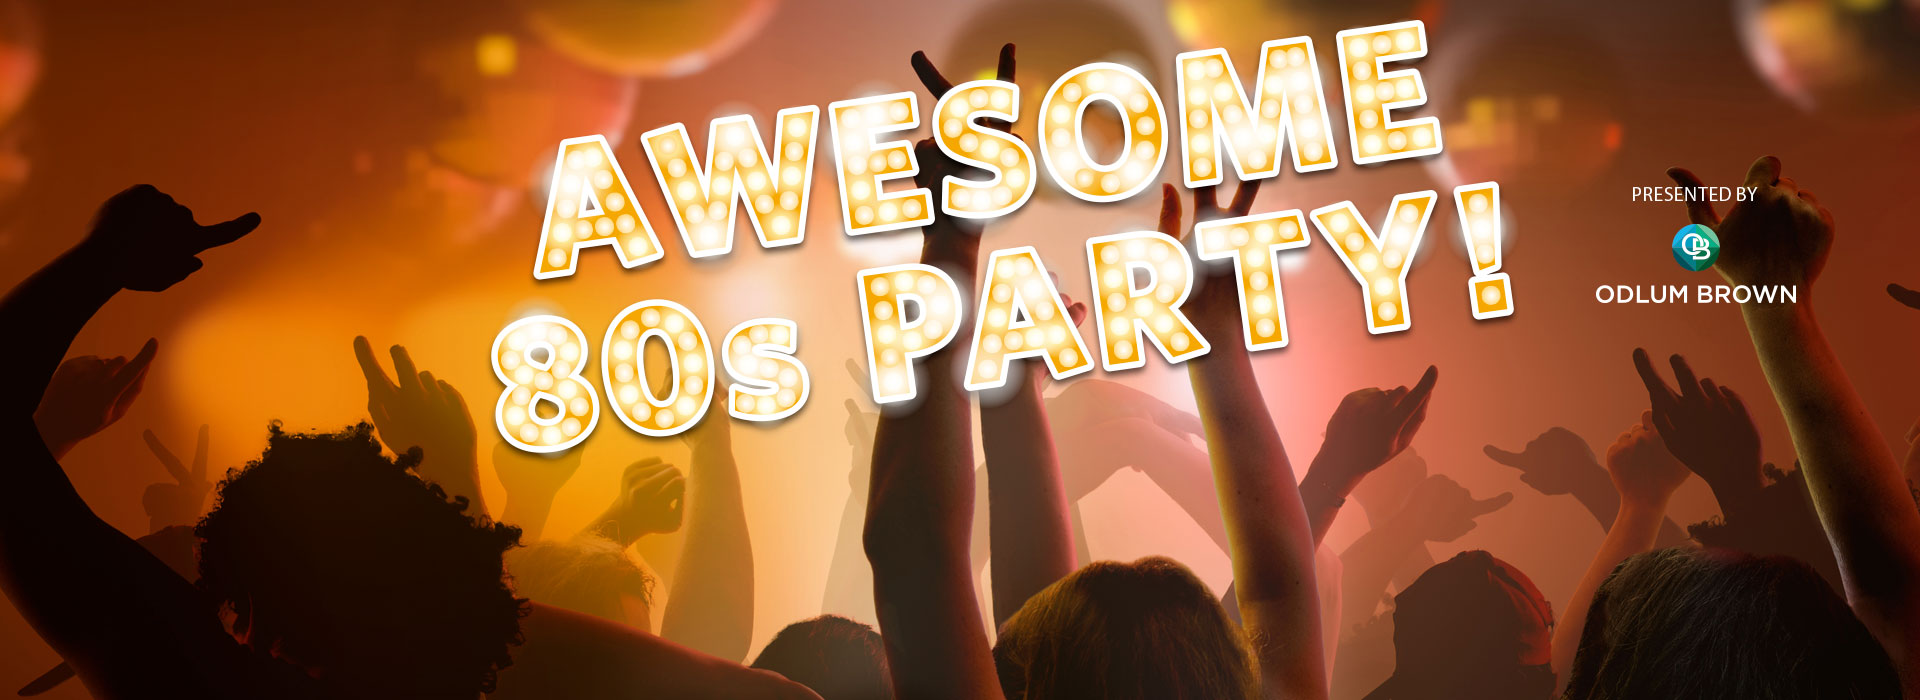 THE BEST '80s PARTY SINCE... THE '80s!